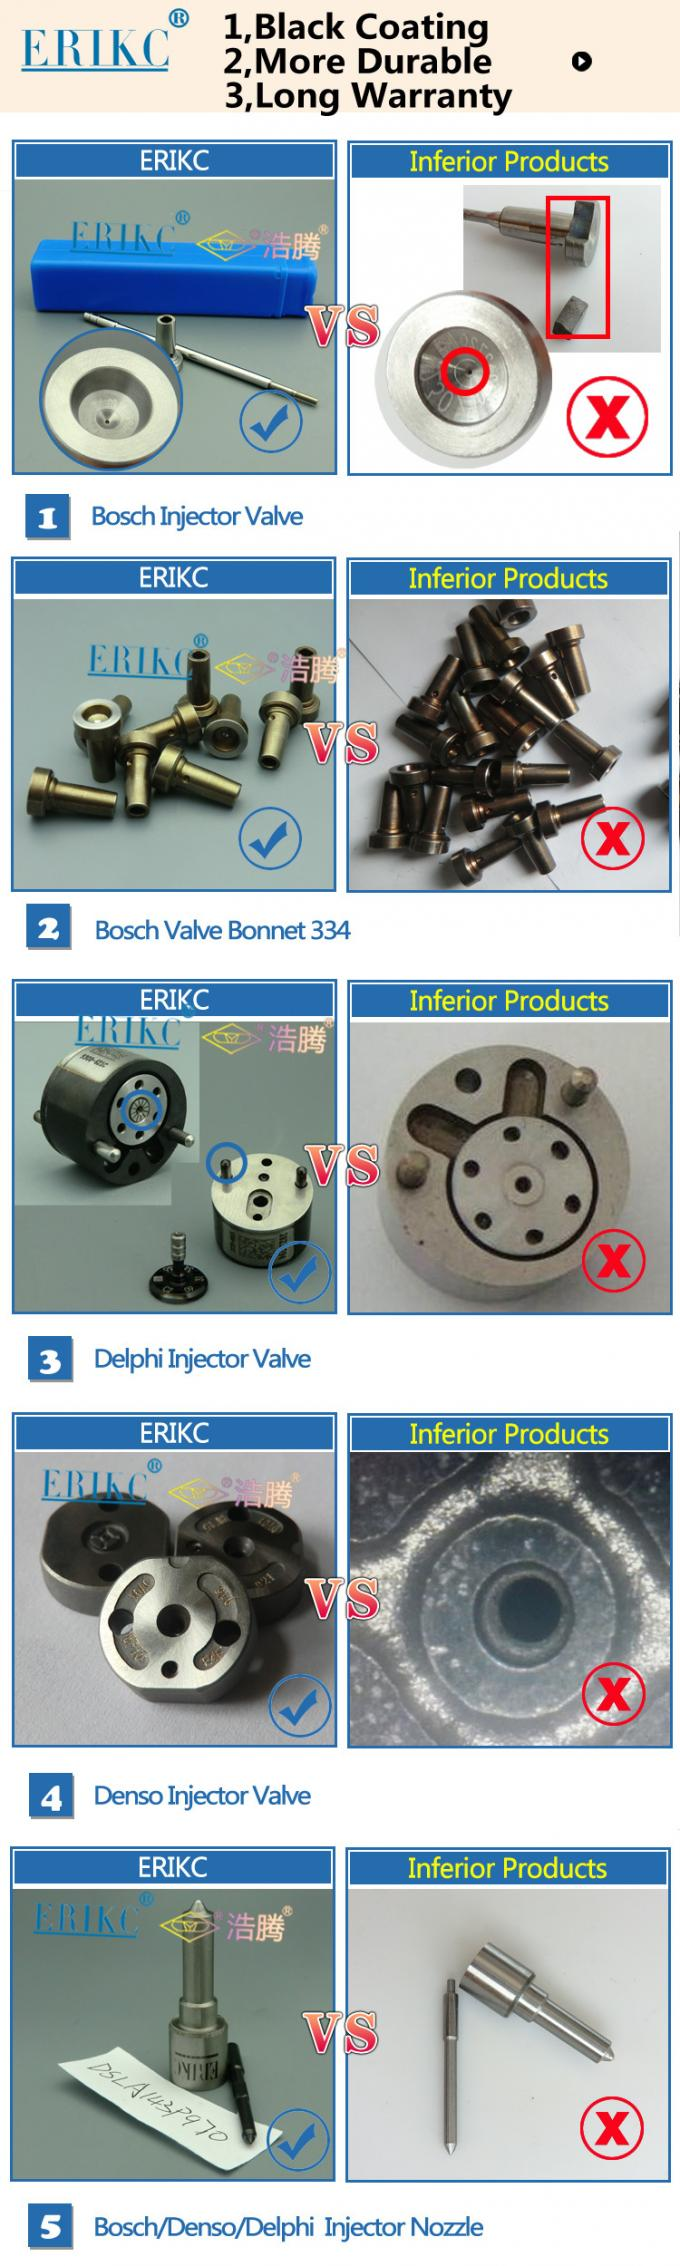 Holden denso control valve  C for 095000 6980,automotive parts fuel injector rod 6980 for 095000 6980 size:  56.35 mm